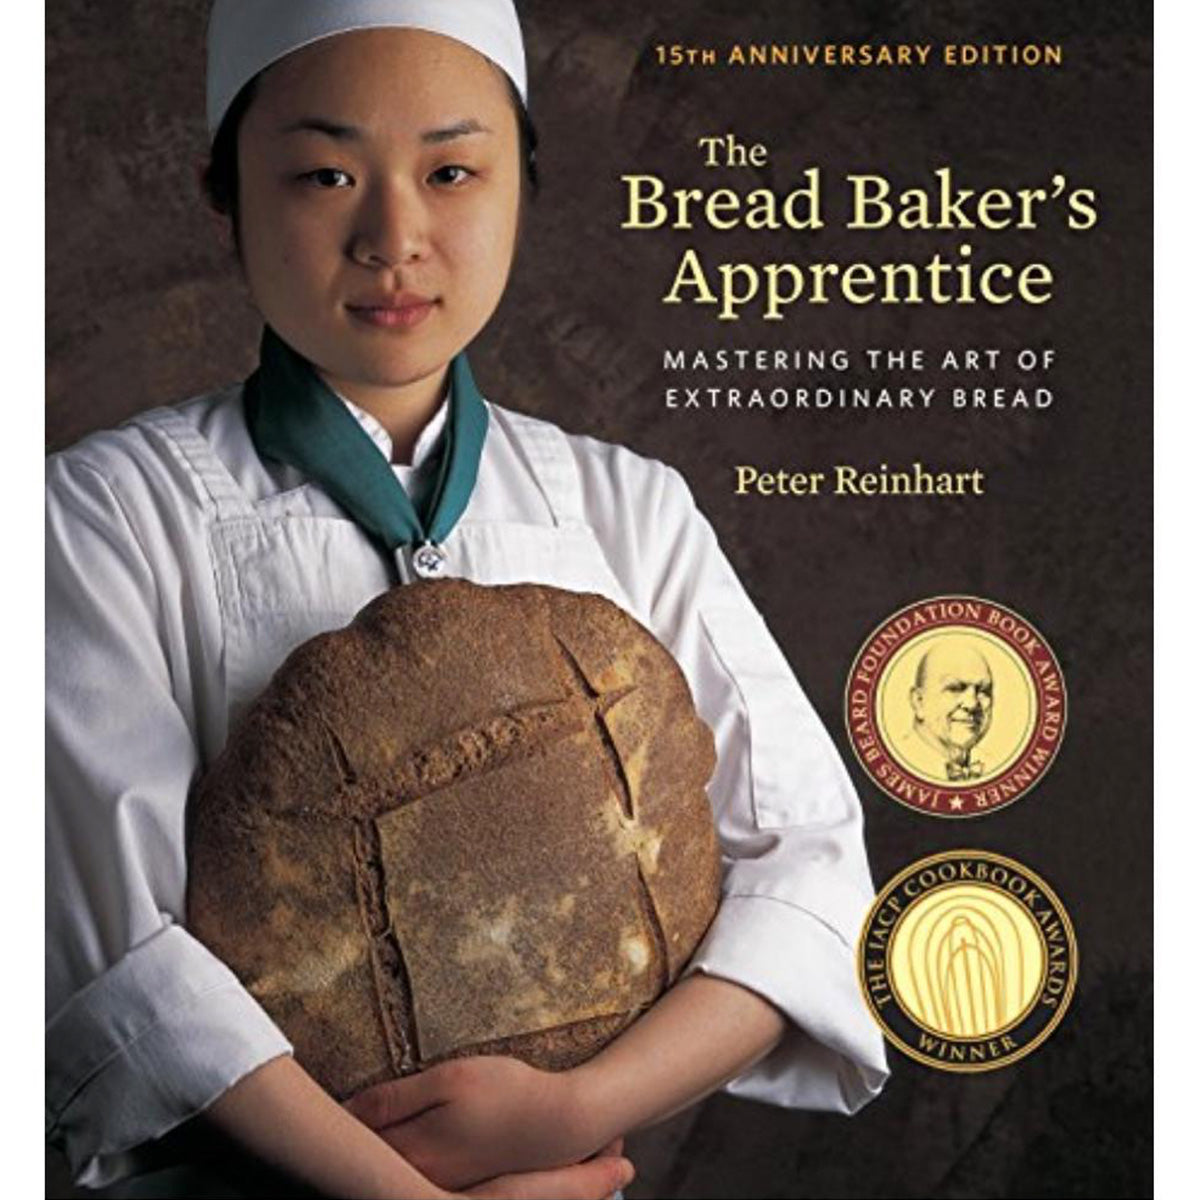 The Bread Baker's Apprentice Cookbook